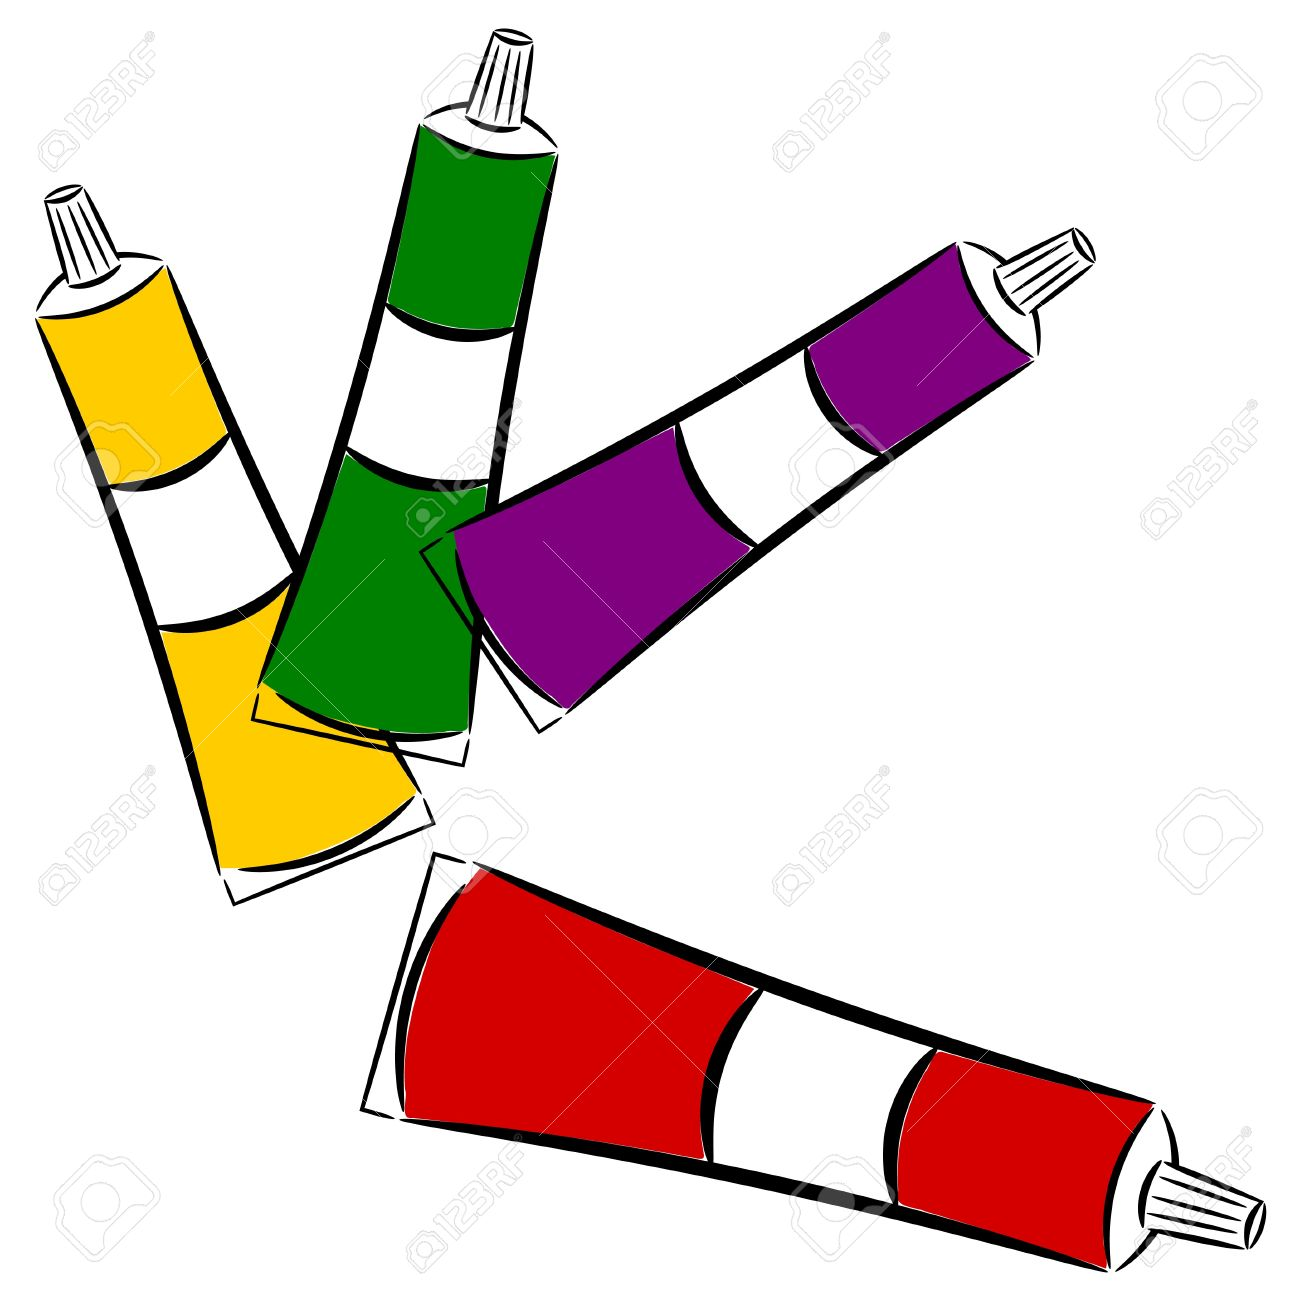 Cartoon Tubes Of Paint Royalty Free Cliparts Vectors And Stock